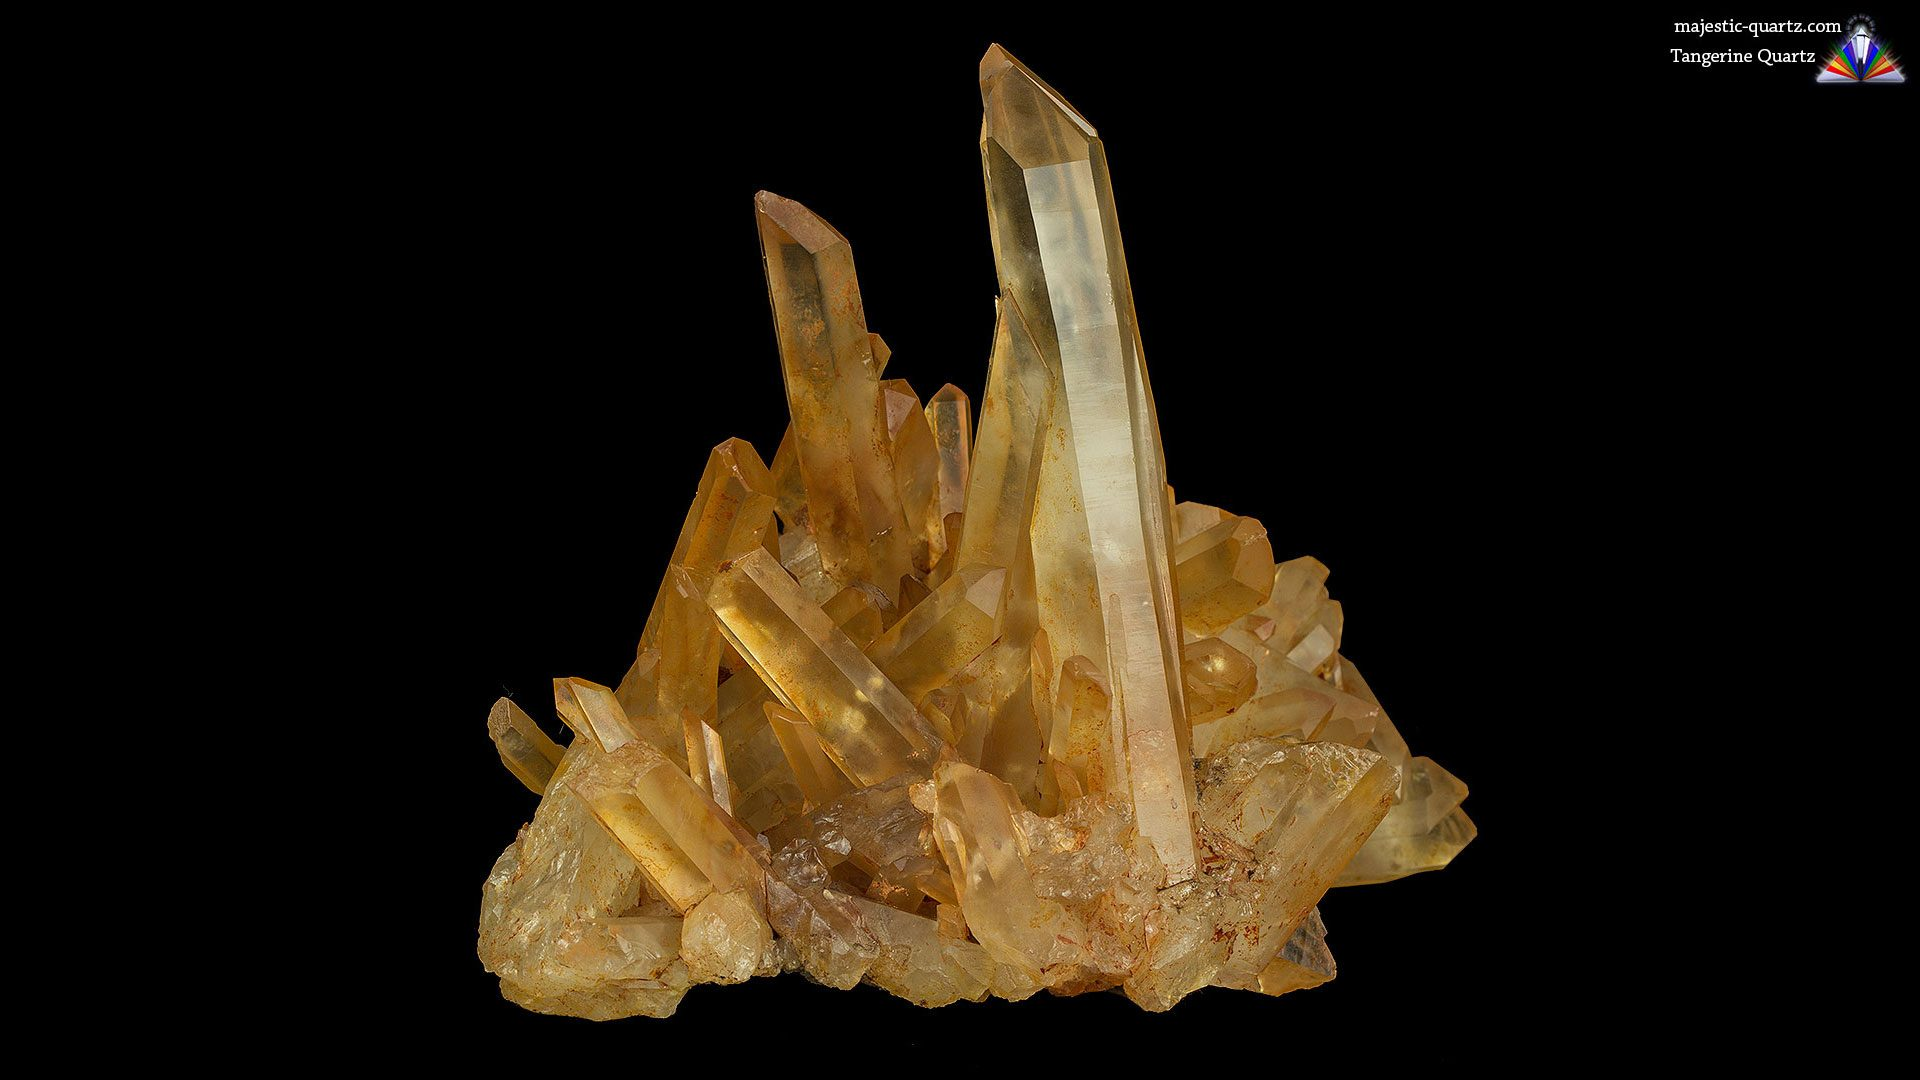 Tangerine Quartz Properties and Meaning - Photograph by Anthony Bradford